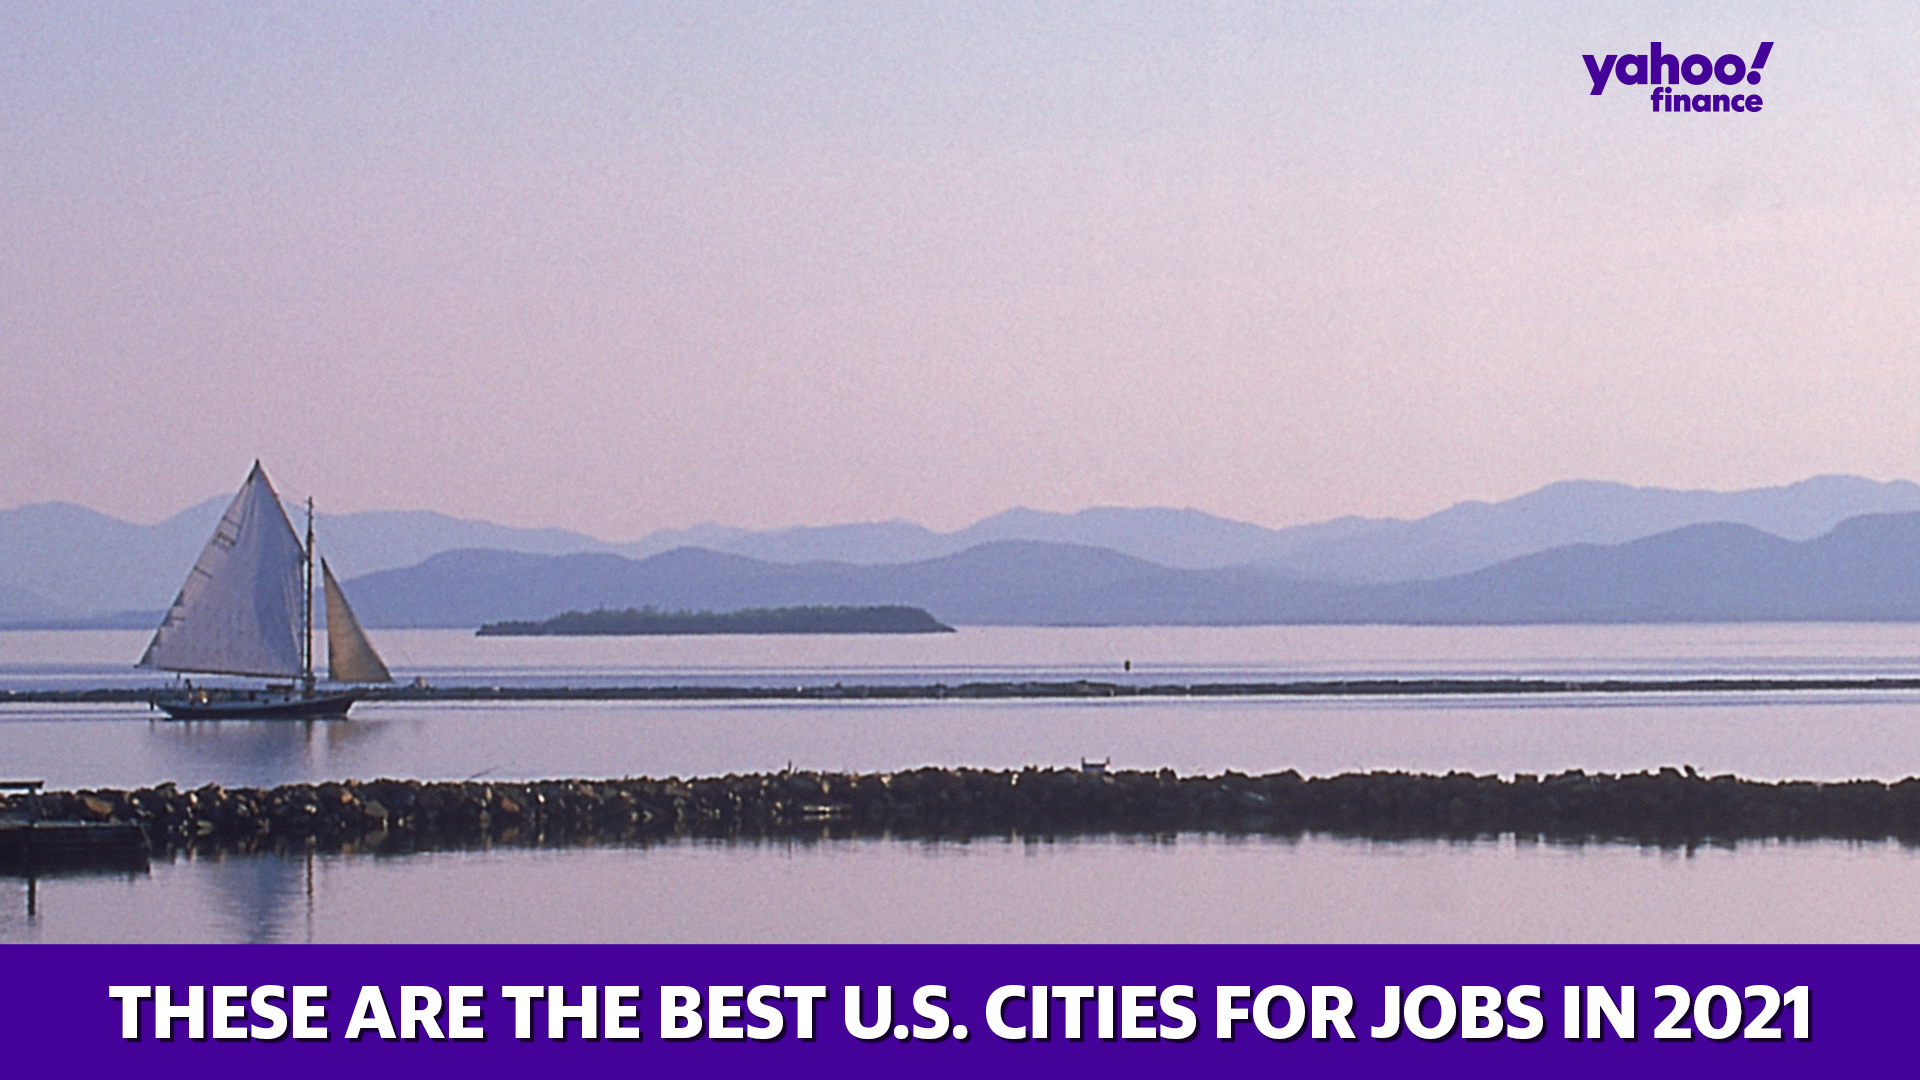 money.yahoo.com: 2021 jobs: These are the best US cities for jobs in 2021